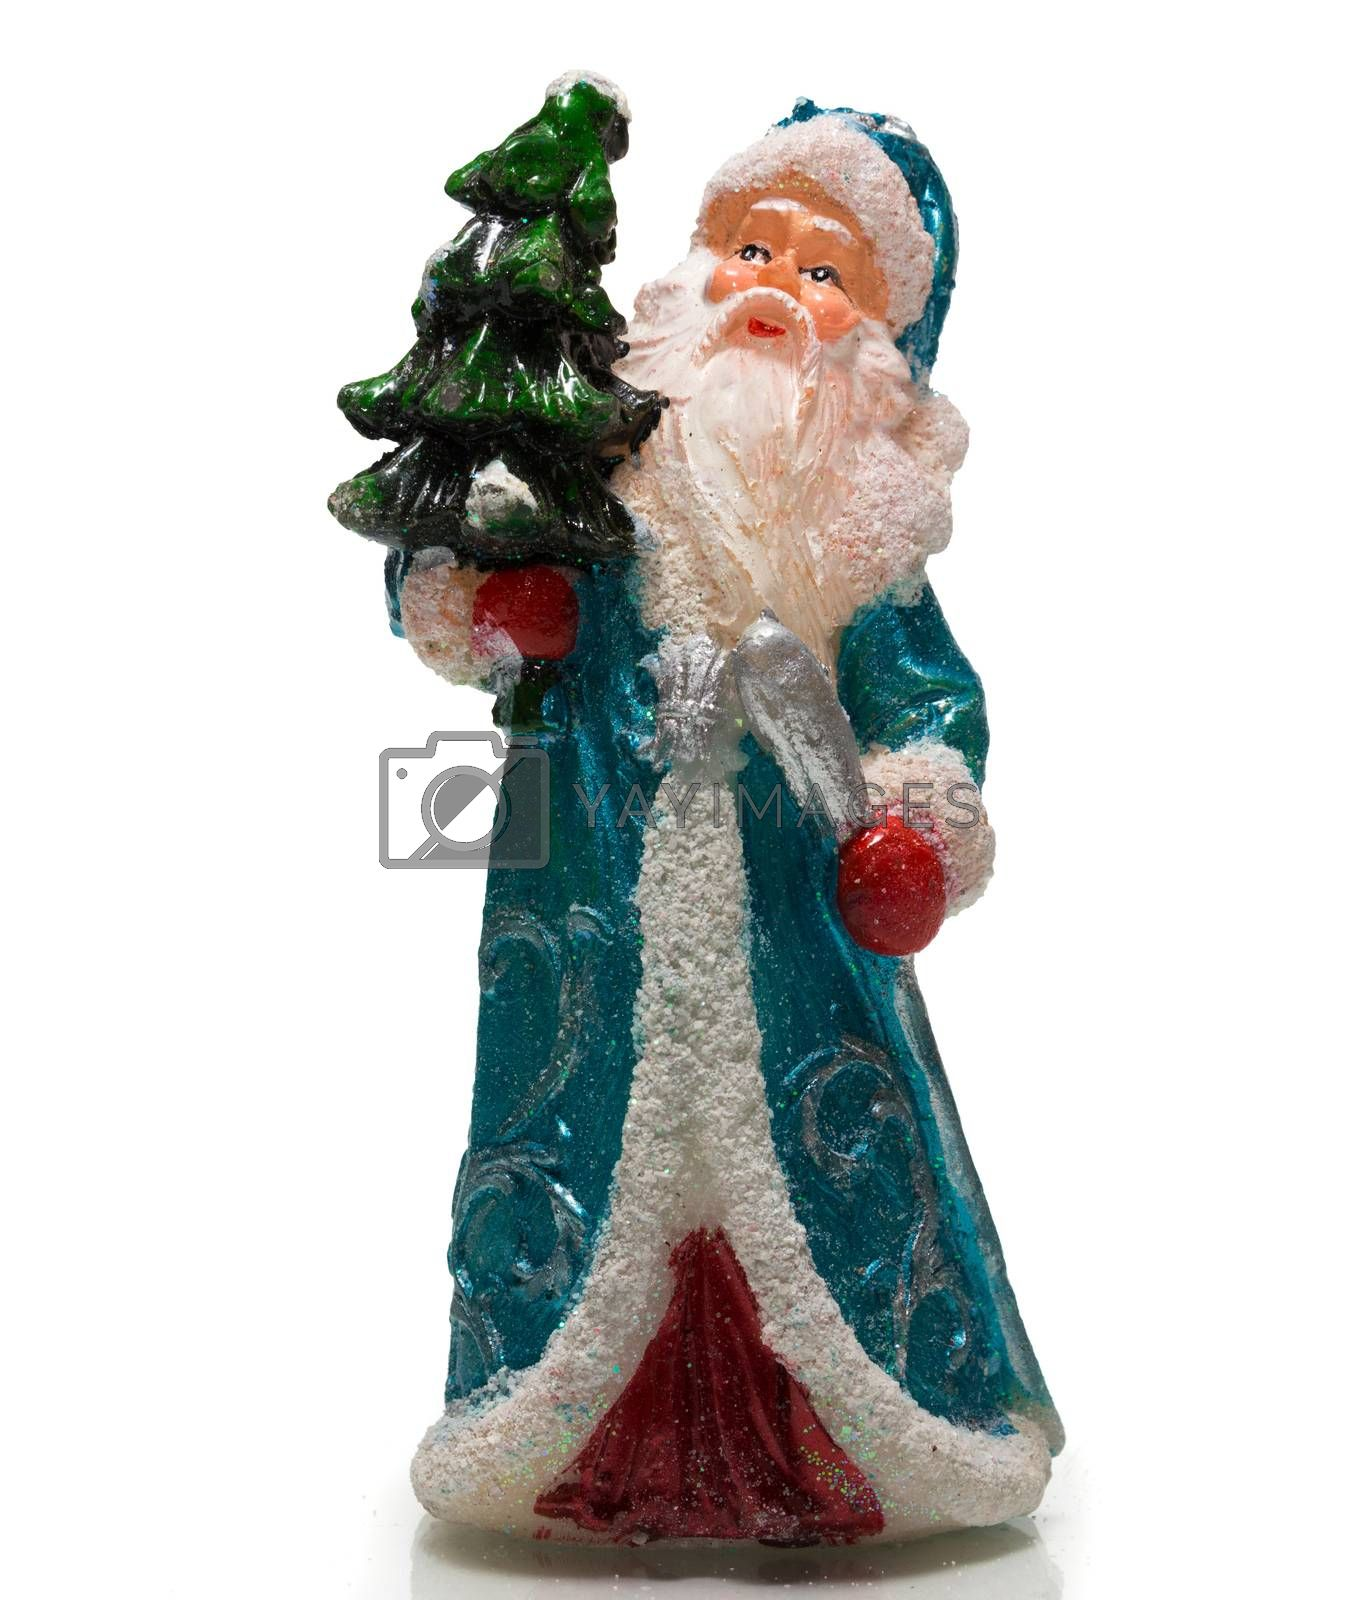 The photograph depicts Santa Claus with Christmas tree